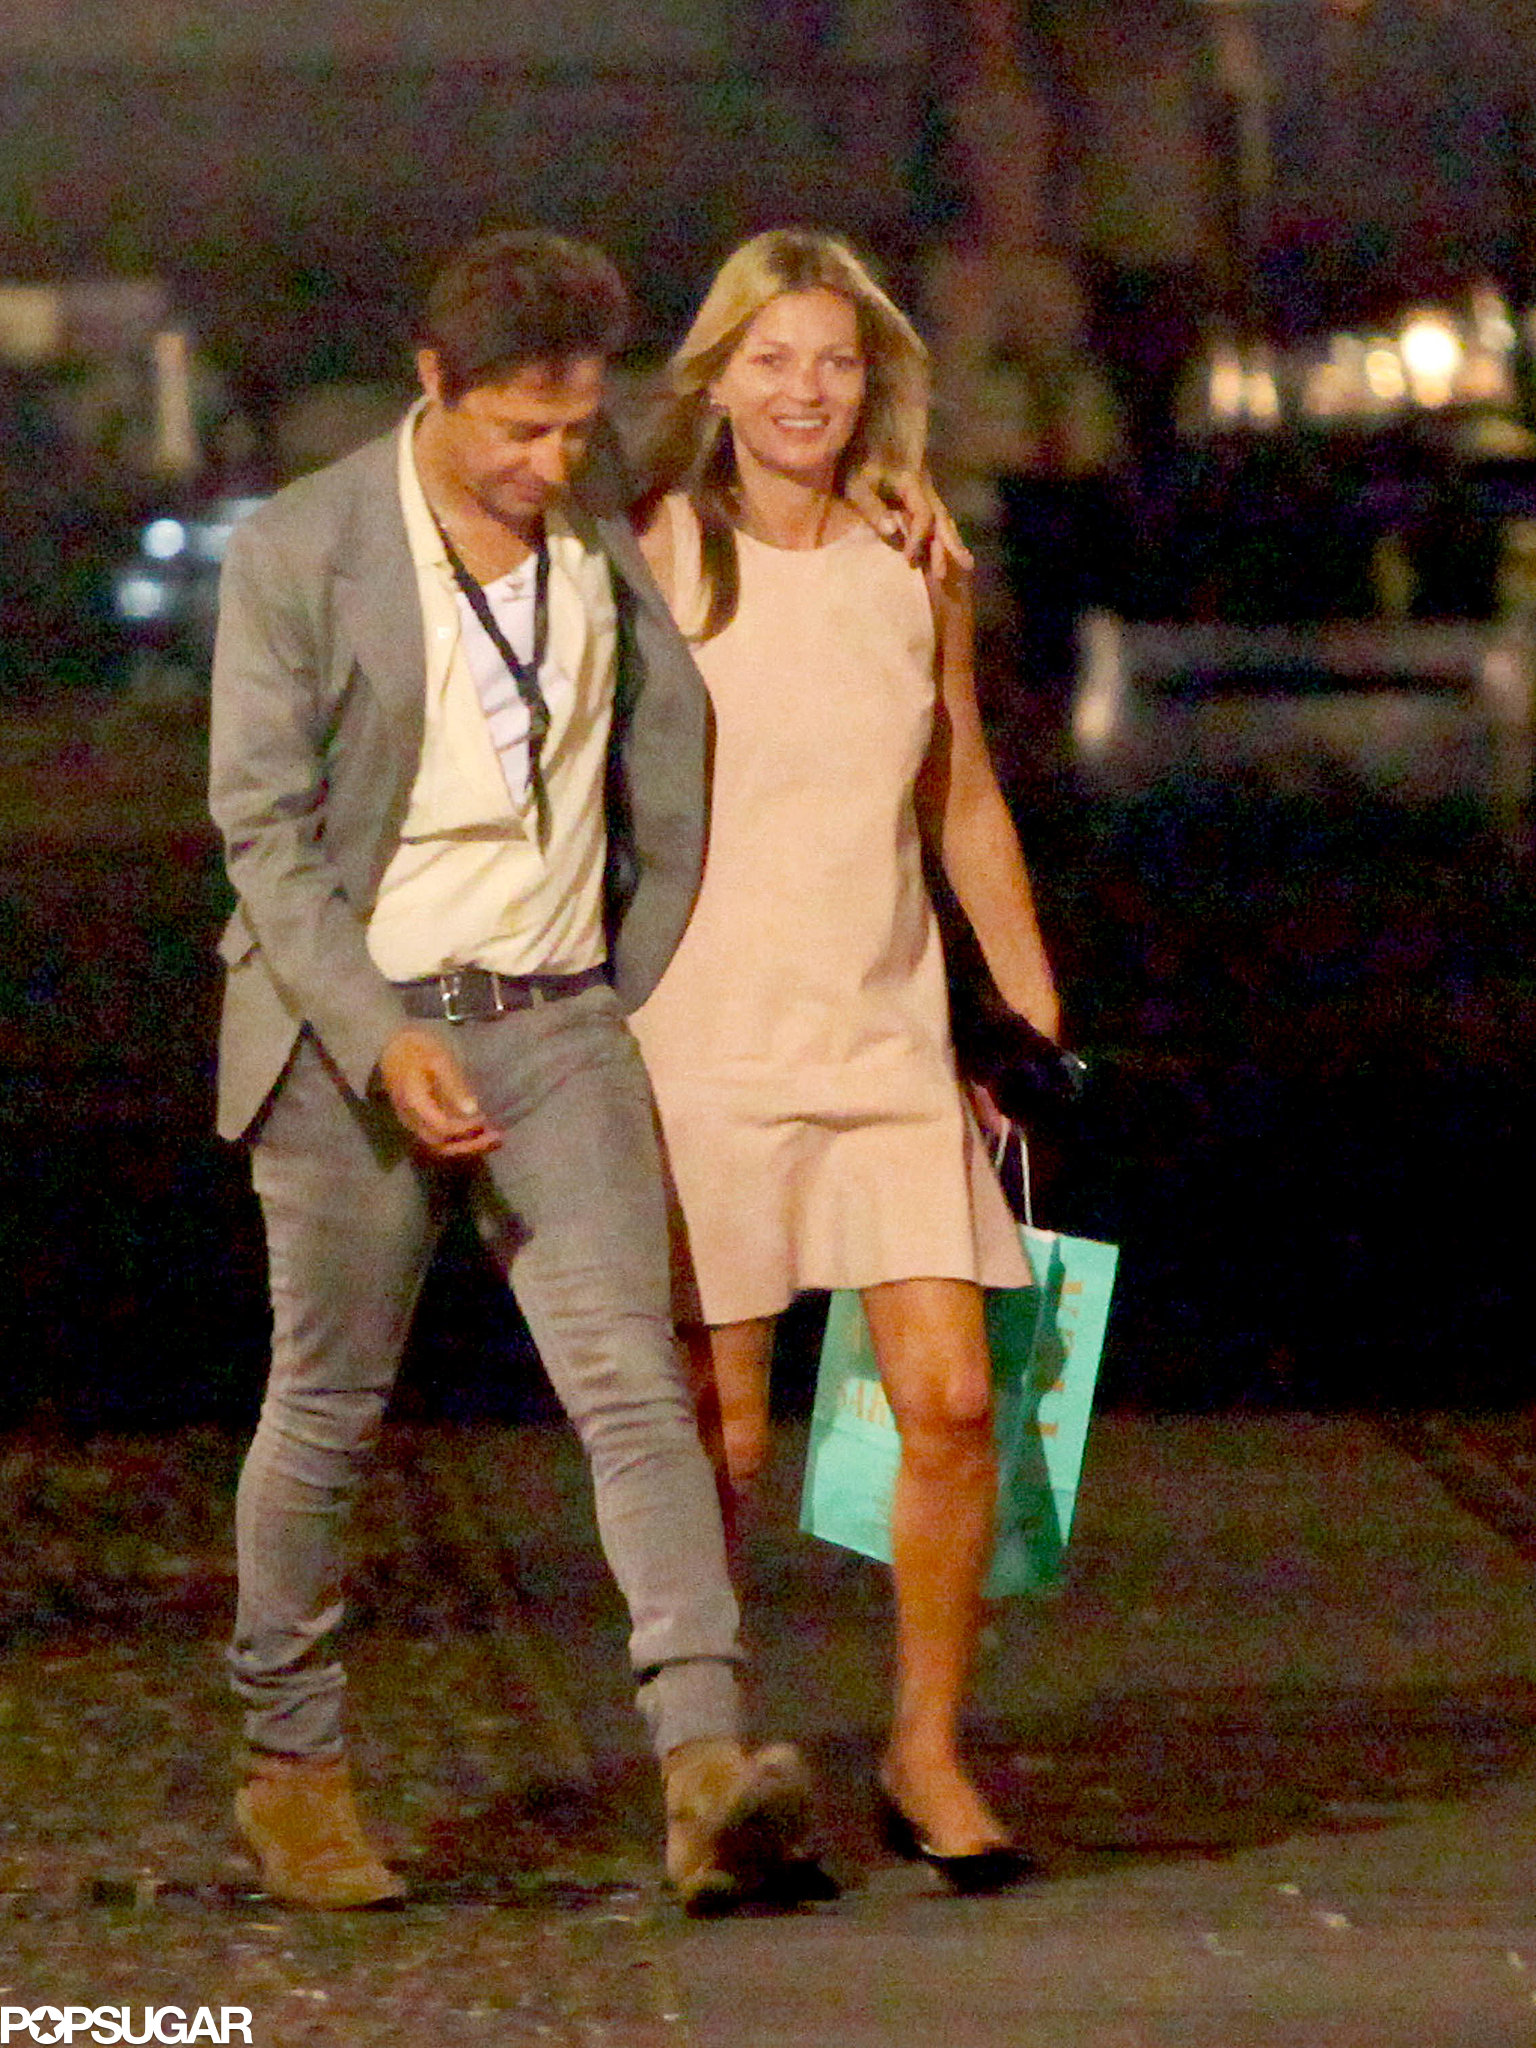 Kate Moss and Jamie Hince were all smiles on their way to dinner.